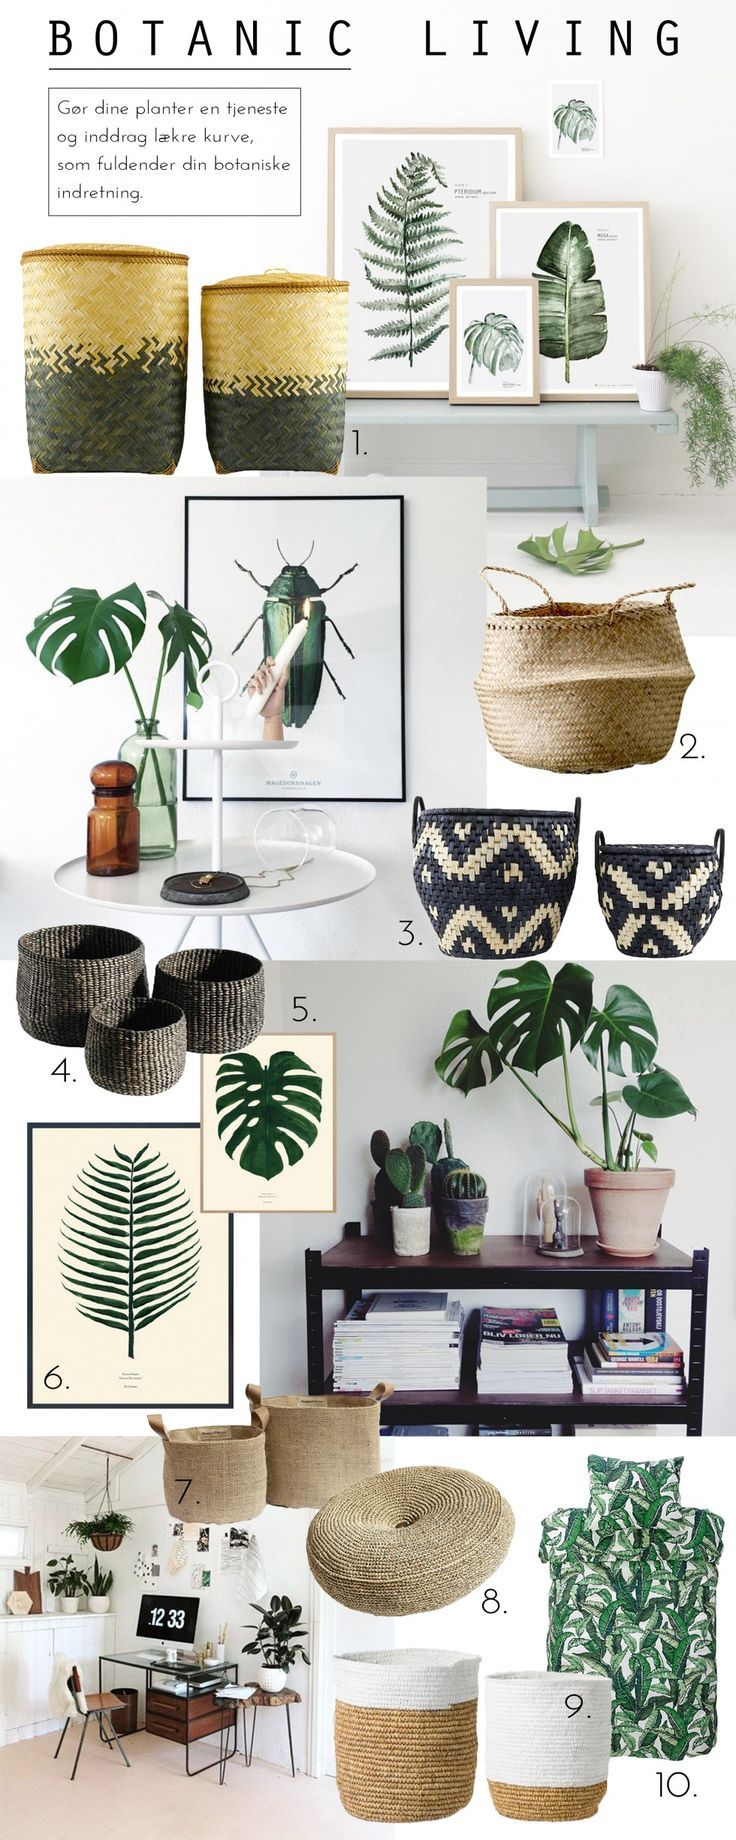 http://www.homedecorexpert.pw/home-decor-trends/botanic-living-mine-favoritter/